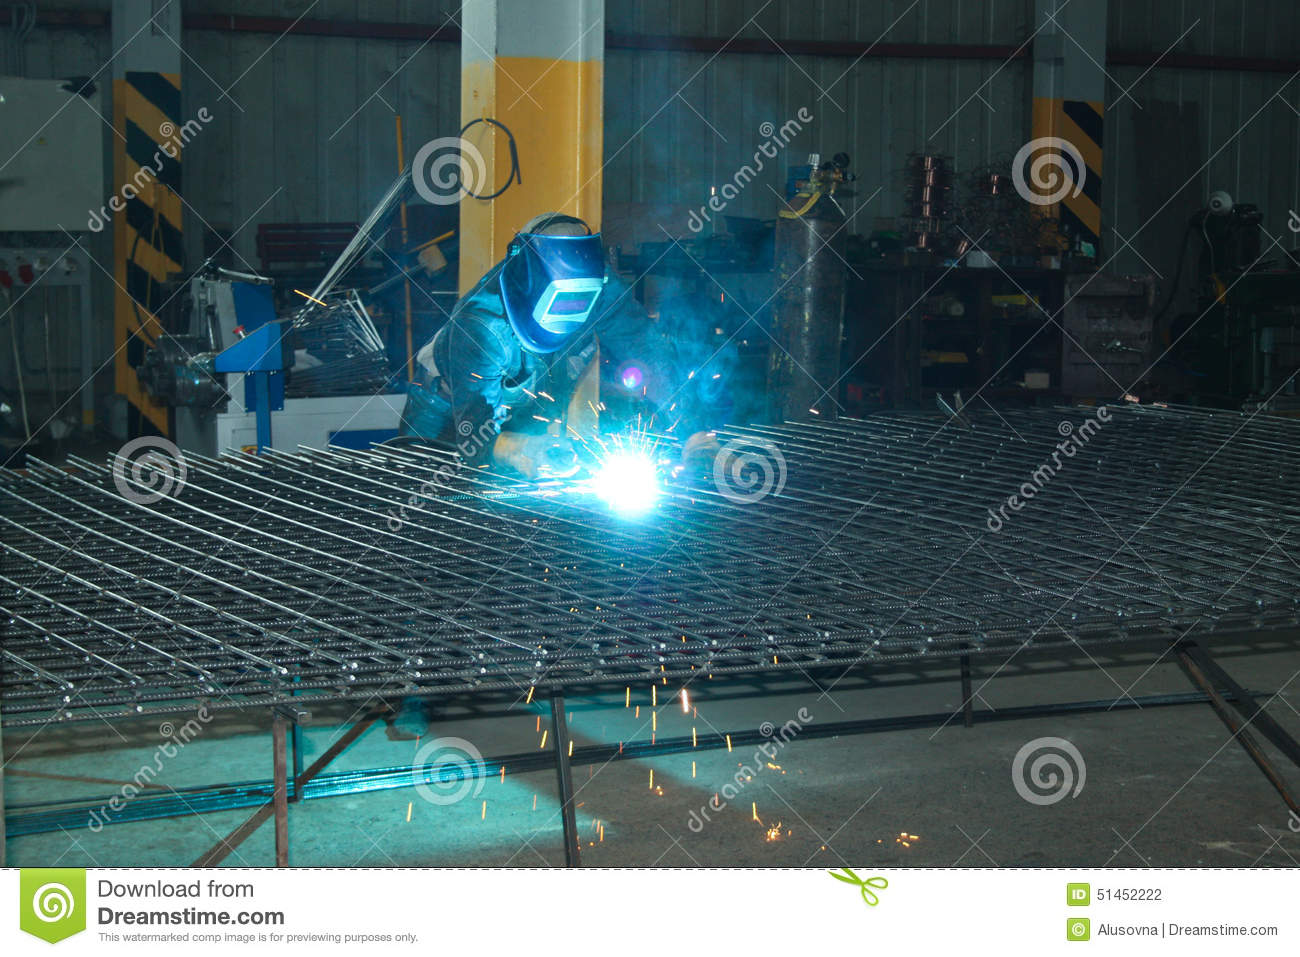 Welder of Metall mesh stock photo. Image of horizontal - 51452222